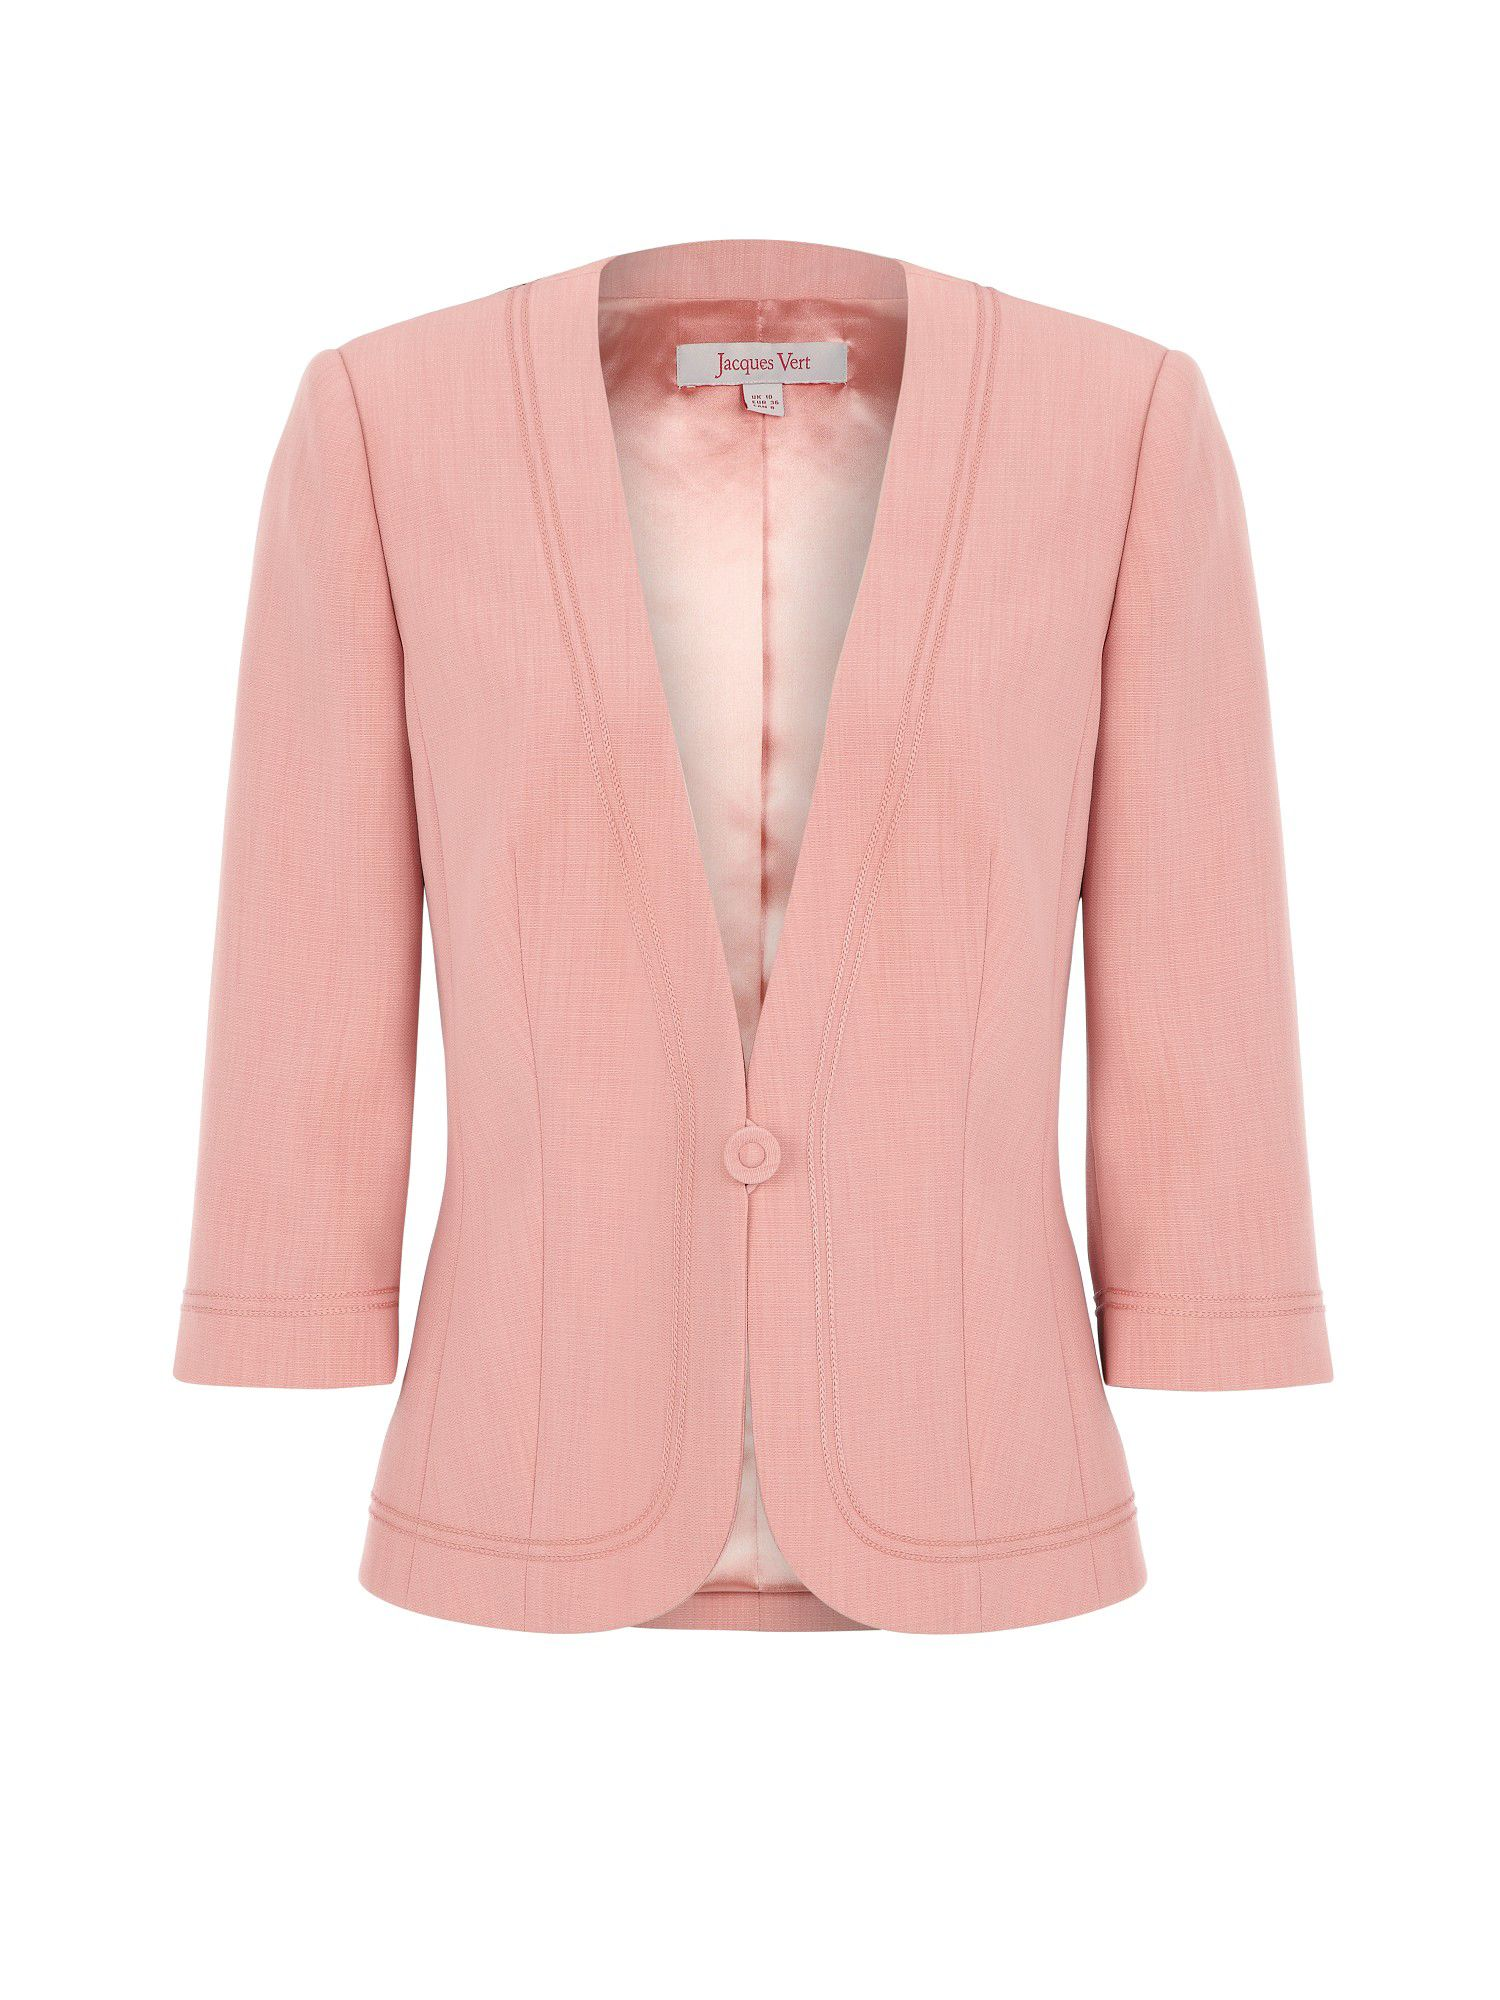 Coral braid detail jacket